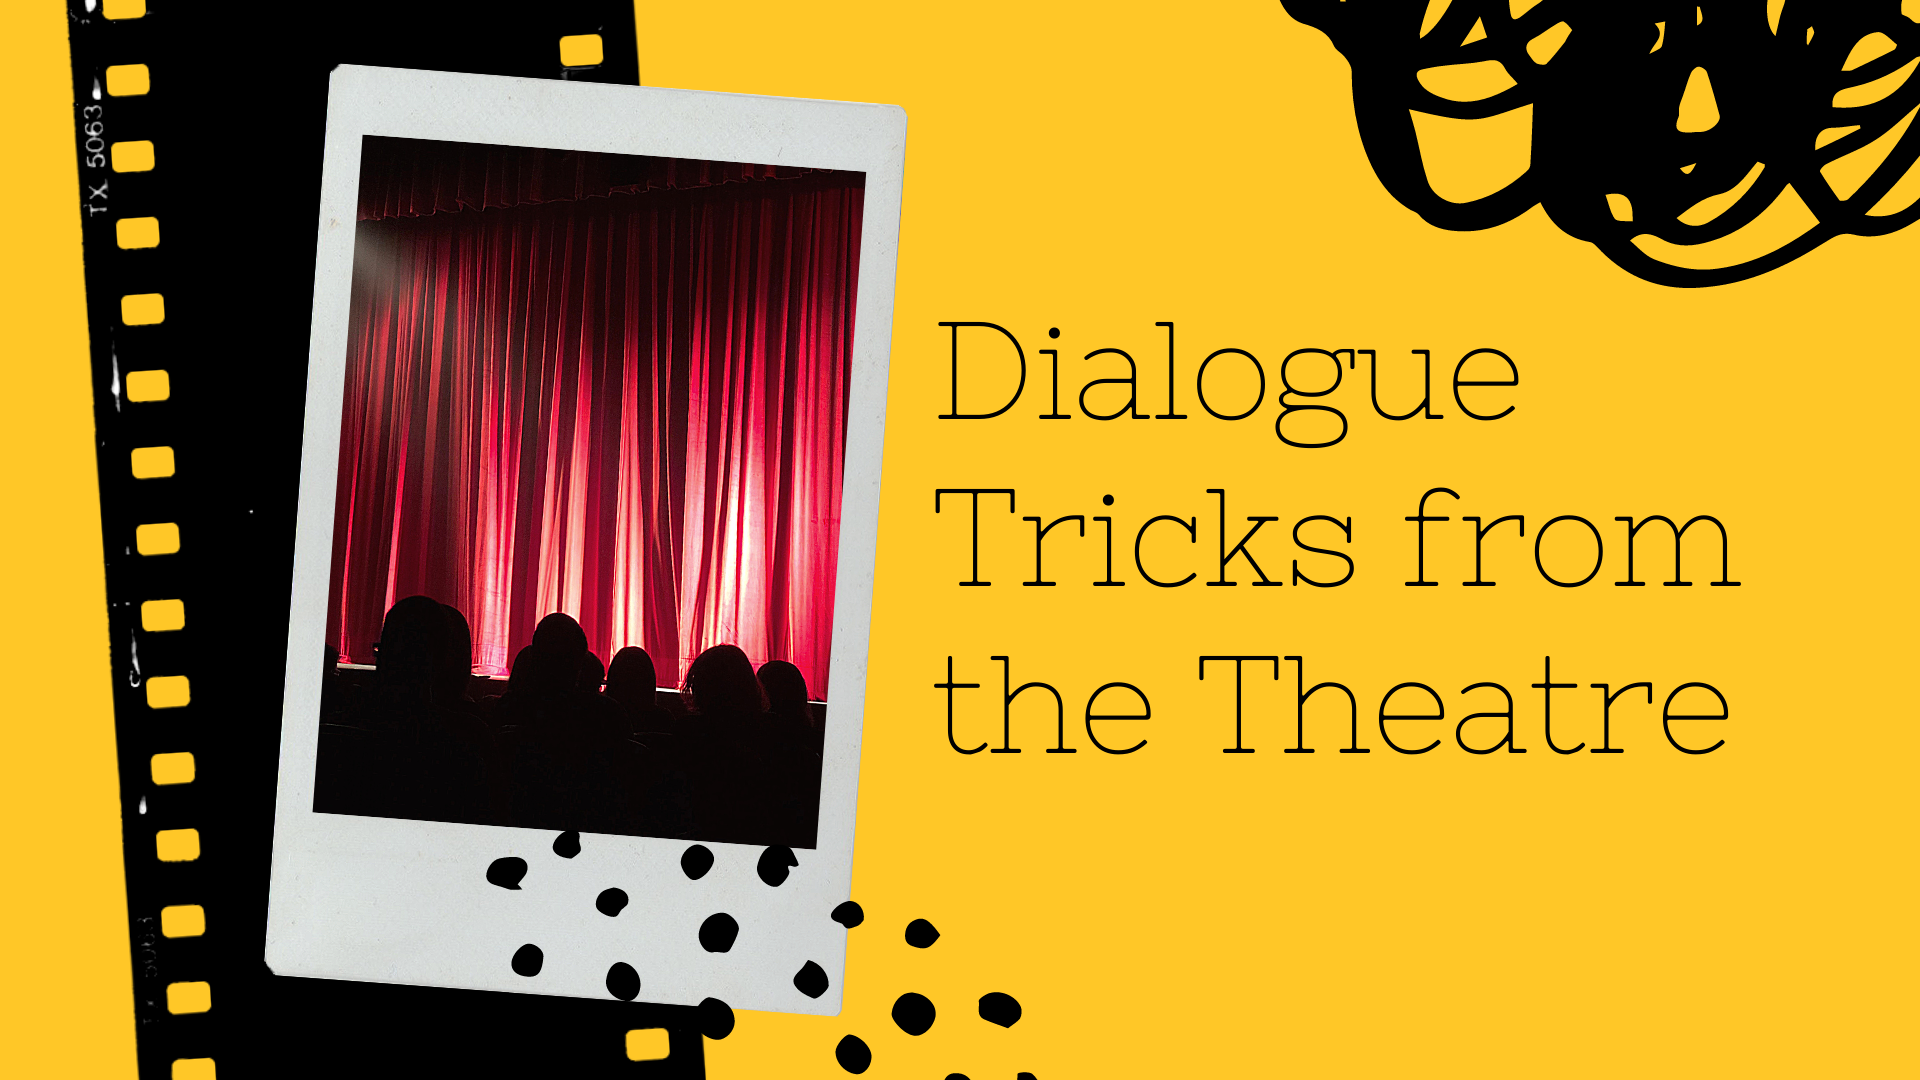 Dialogue Tricks from the Theatre